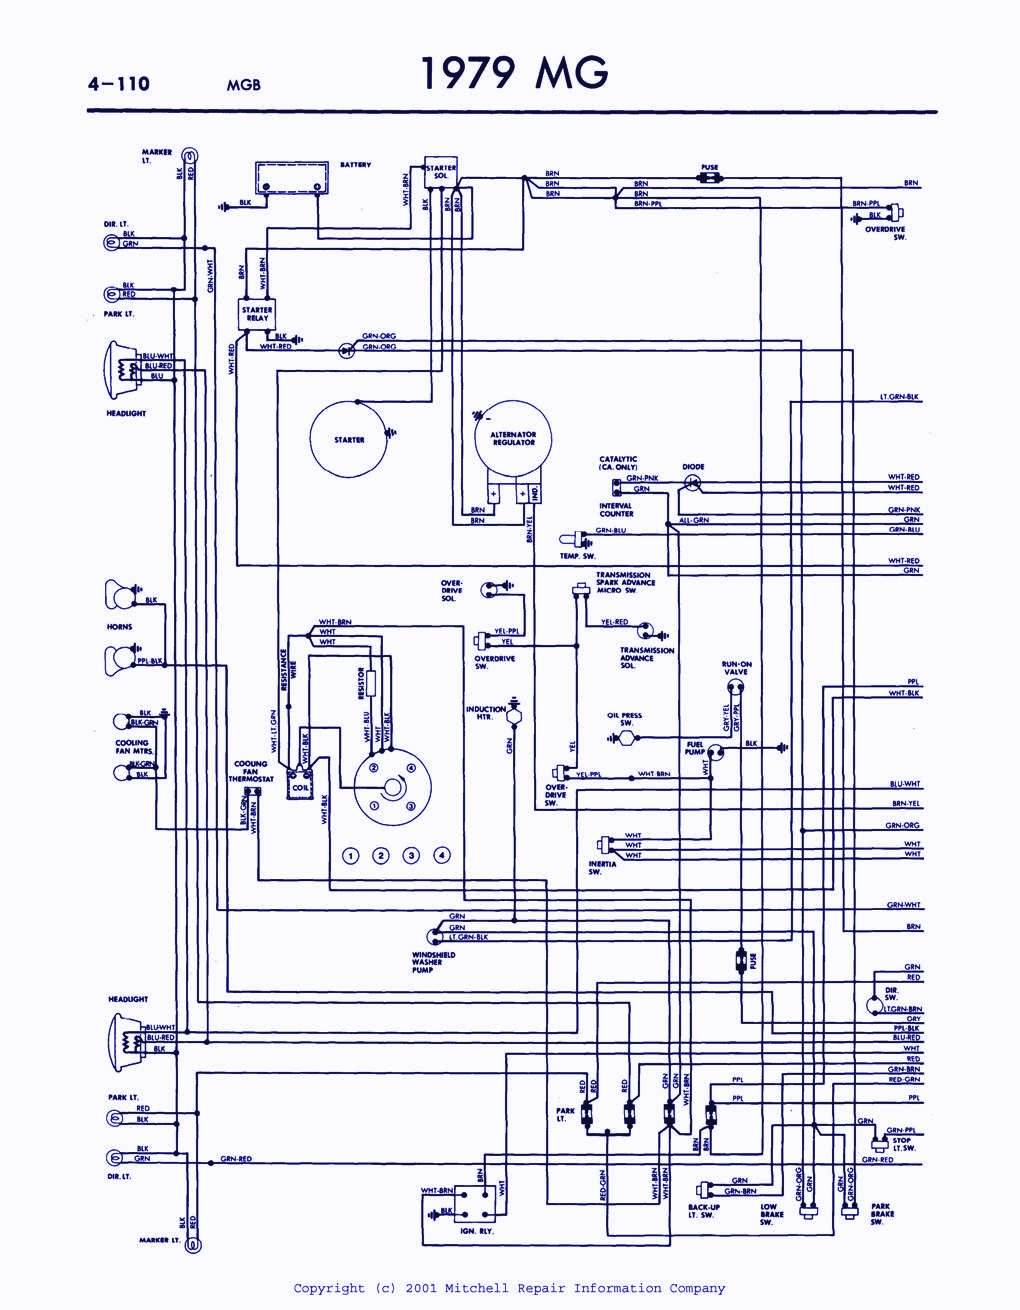 mgb wiring diagram 1979 1979 mg mgb wiring diagram